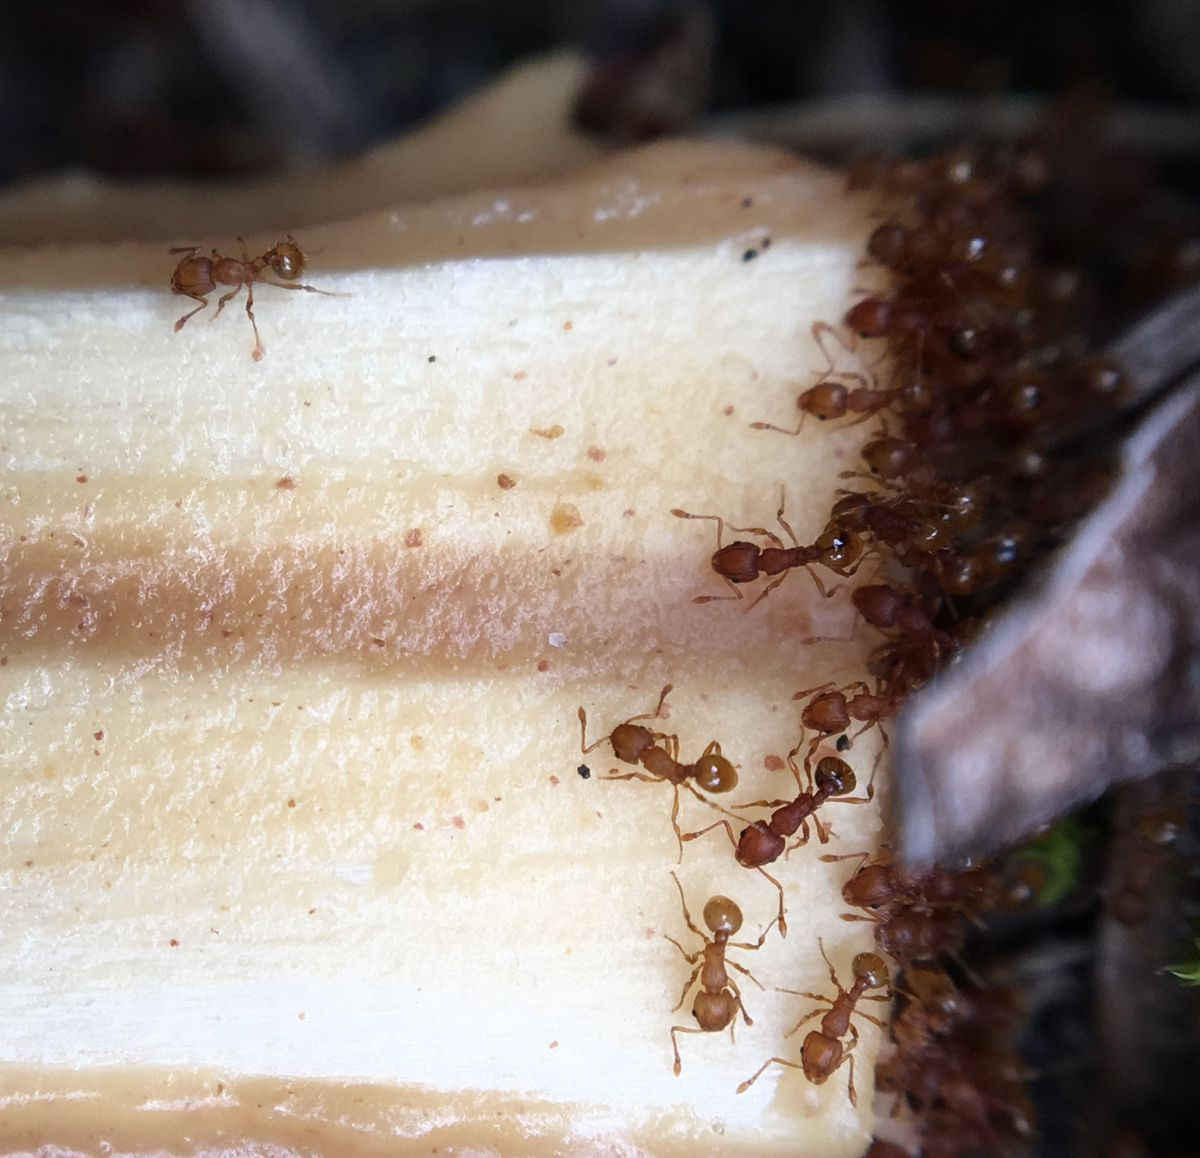 Unwanted visitors: Little fire ants discovered at Hawaii Volcanoes National Park